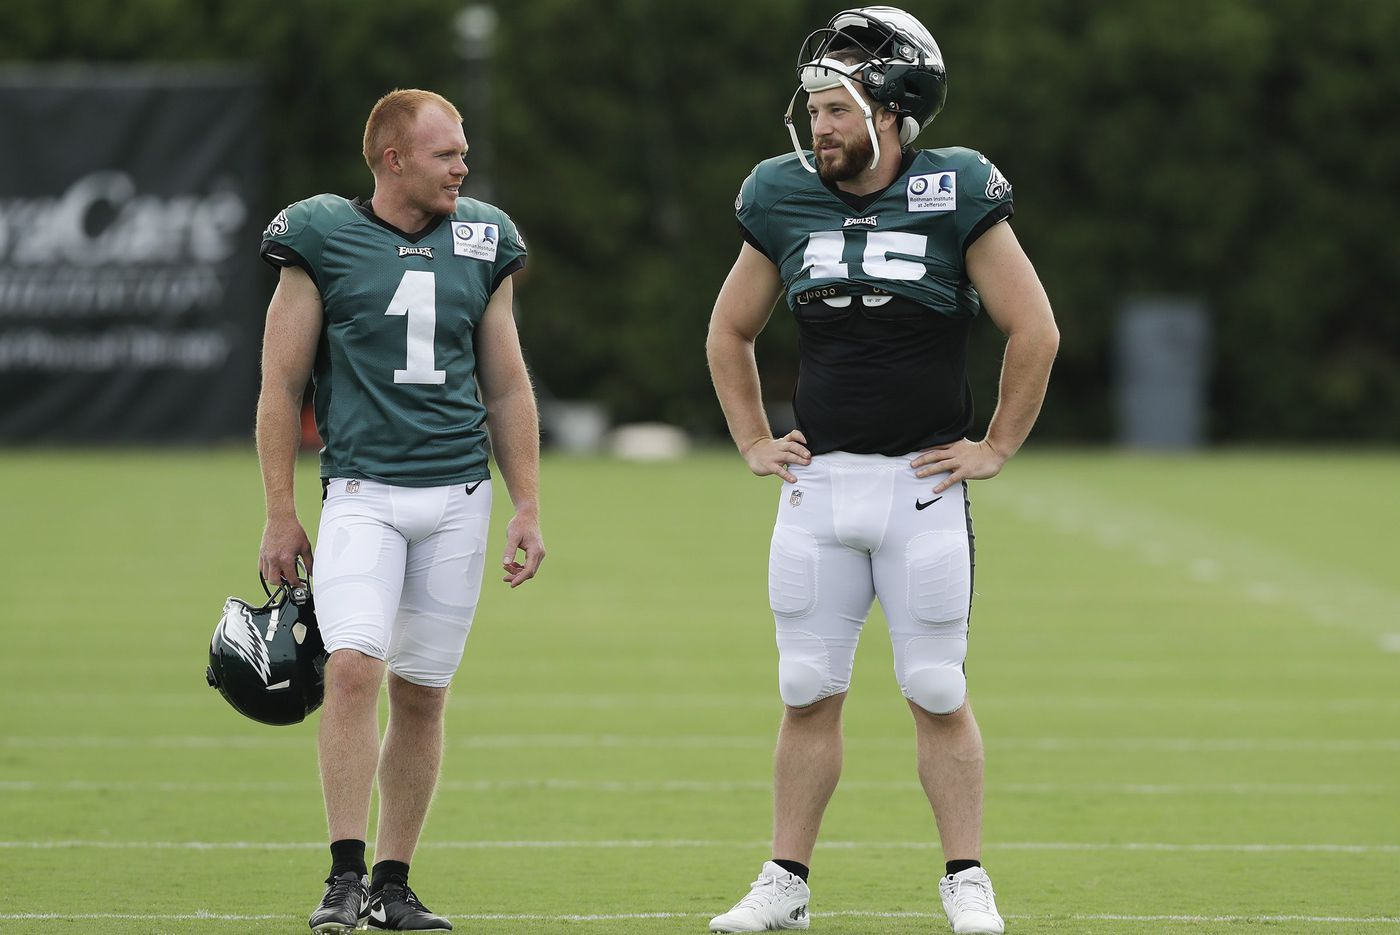 Eagles punter Cameron Johnston doesn't yet have a leg up on the job | Jeff McLane